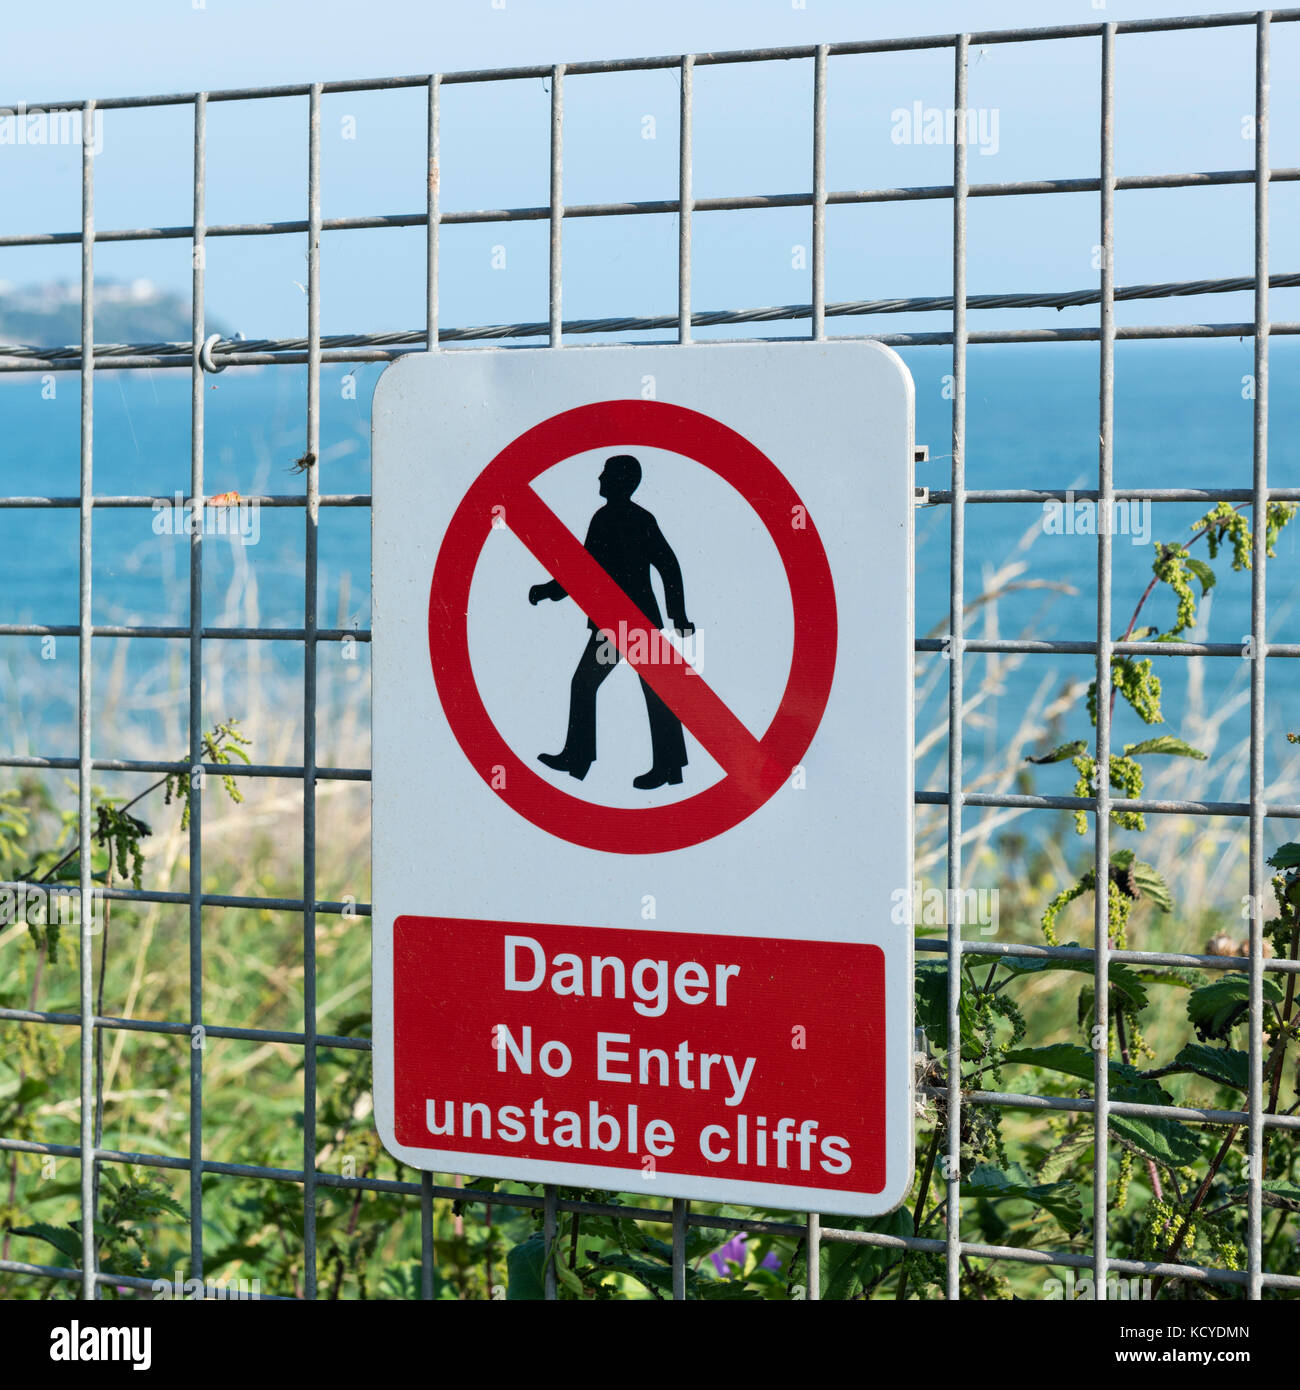 Black ,Red and White Danger sign - No Entry unstable cliffs - on a ...